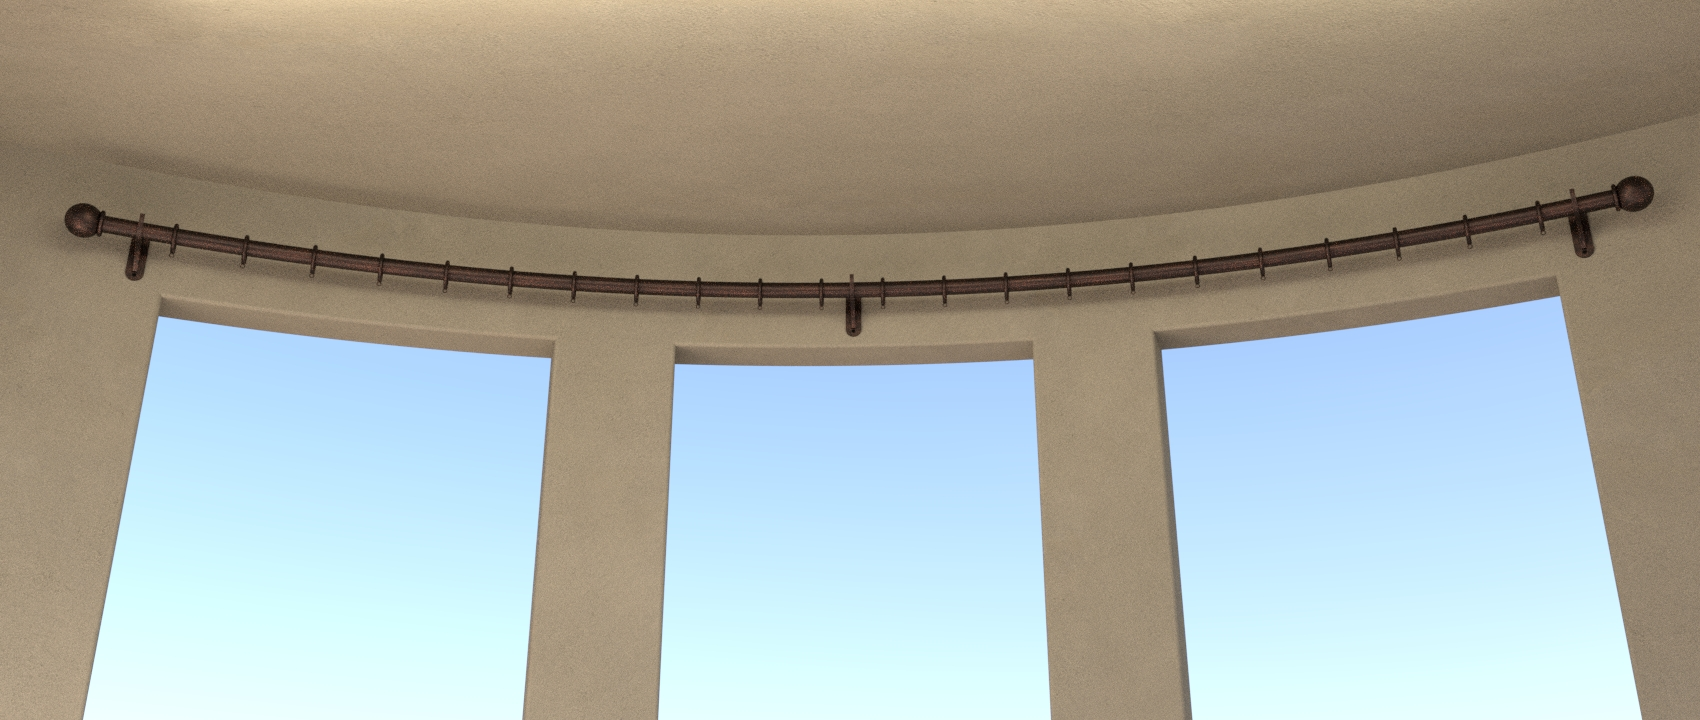 The Image Below Shows A Typical Example Of Curved Bay Window In This Rings Do Not Need To Be Welded